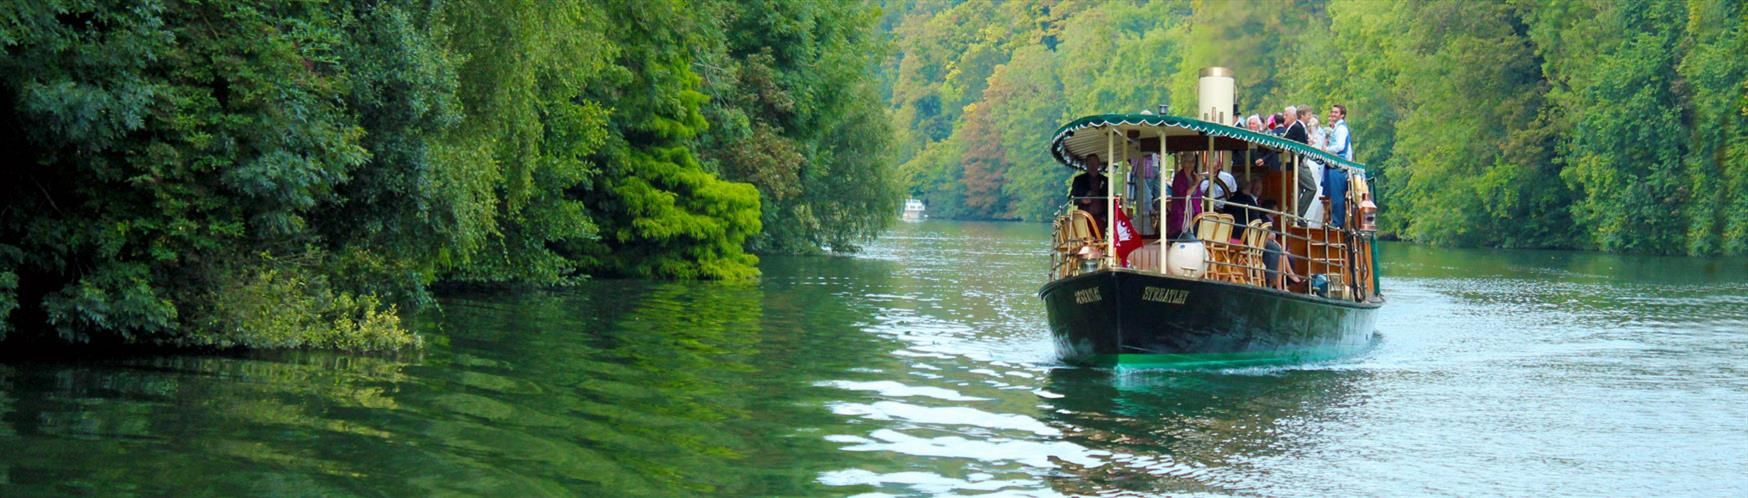 Boat Trips In Surrey Official Tourism Website For Surrey